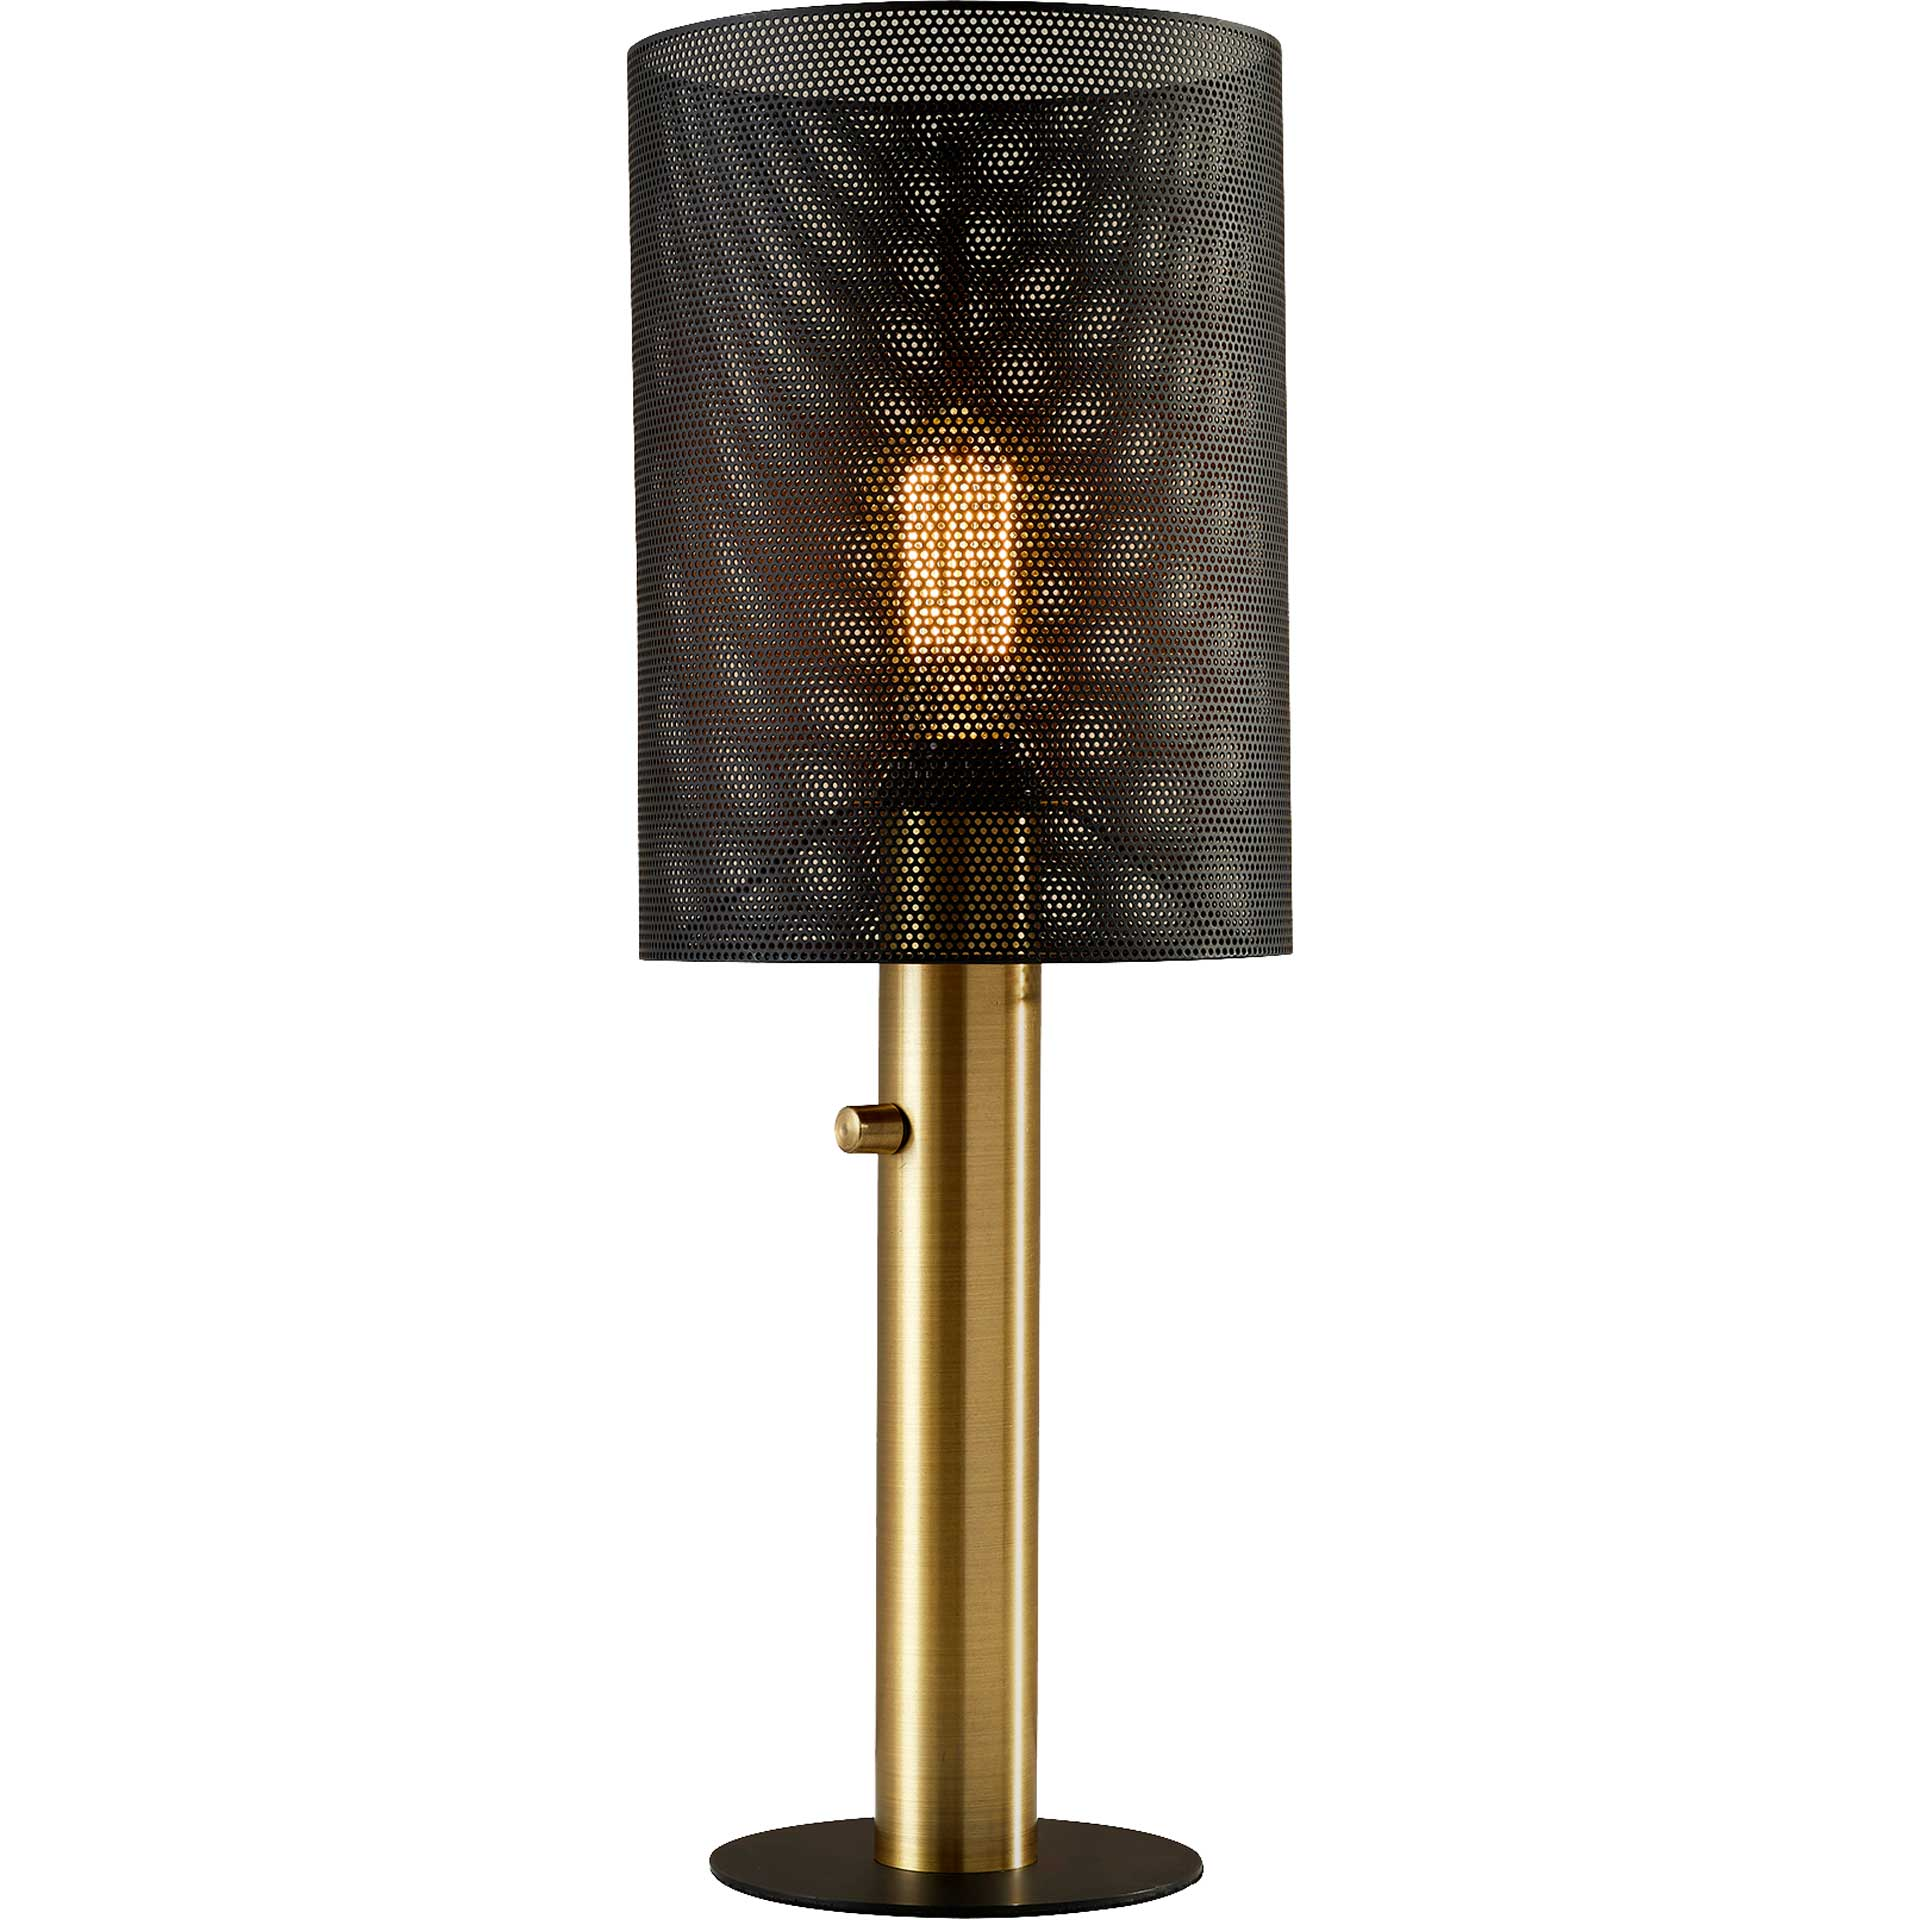 Niort Tall Table Lamp Black/Antique Brass